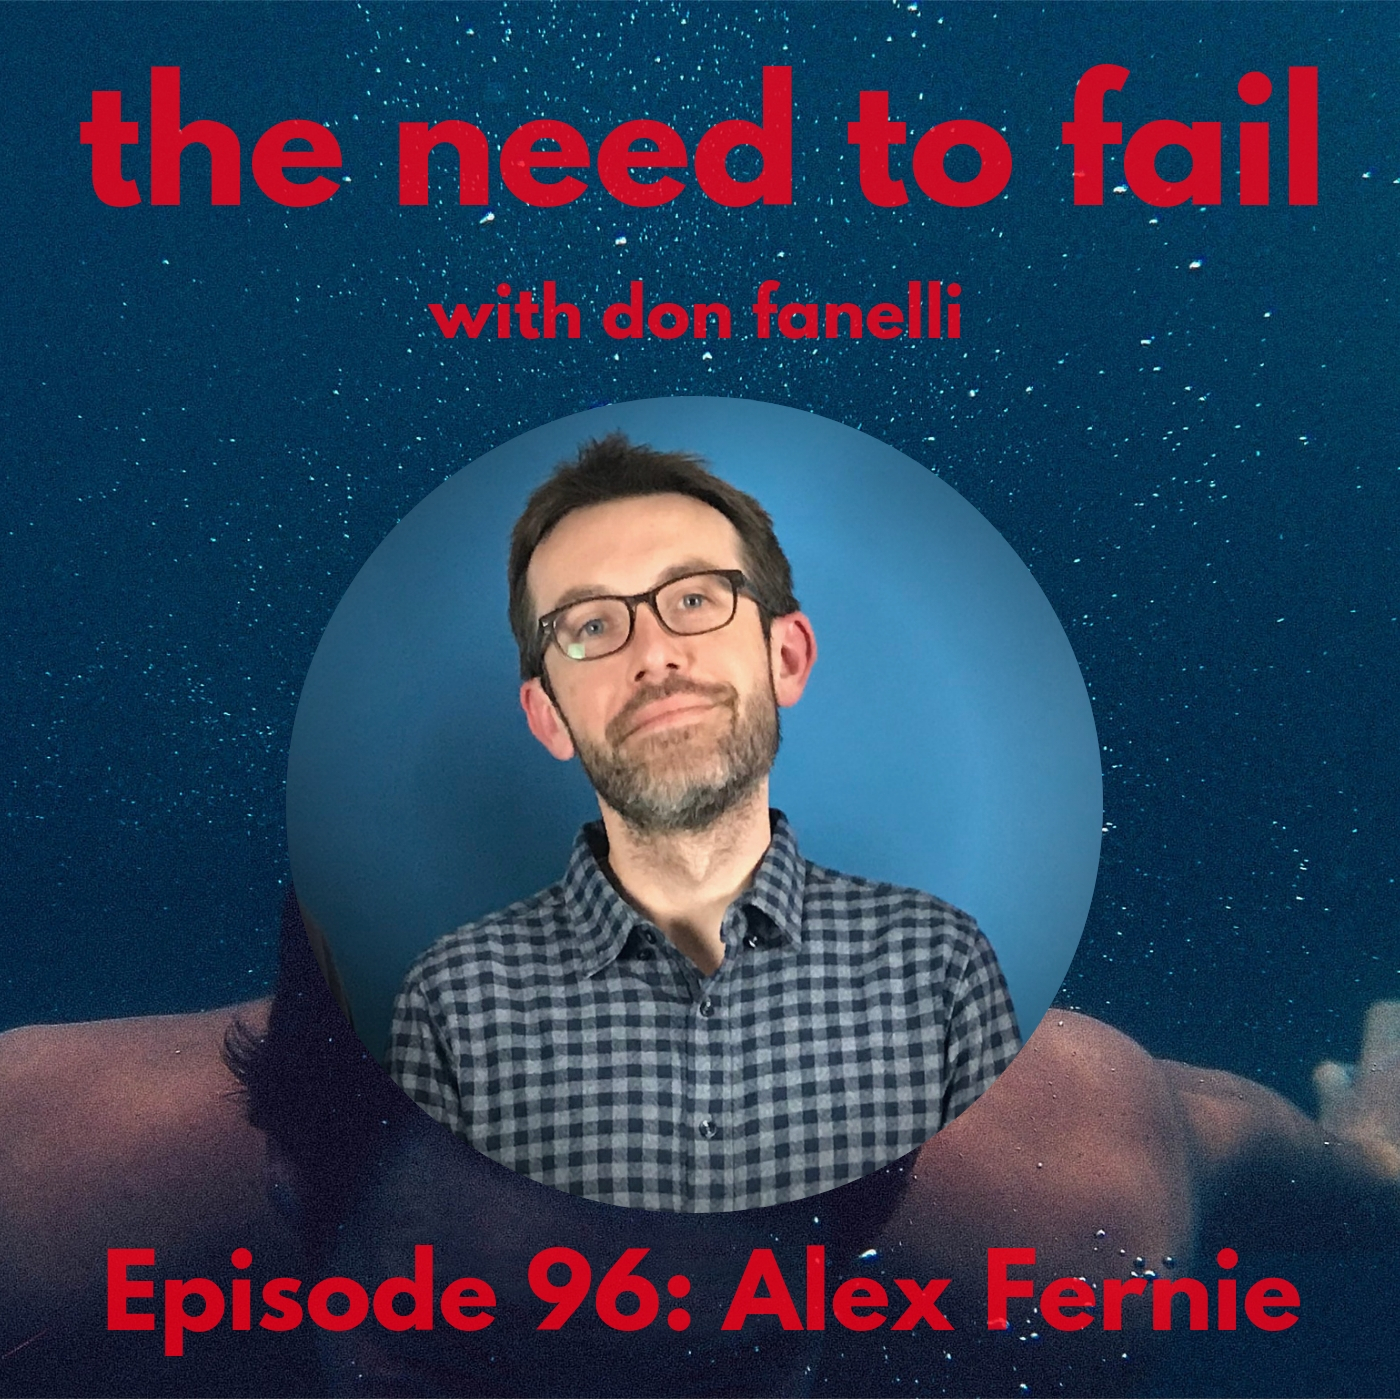 Episode 96: Alex Fernie